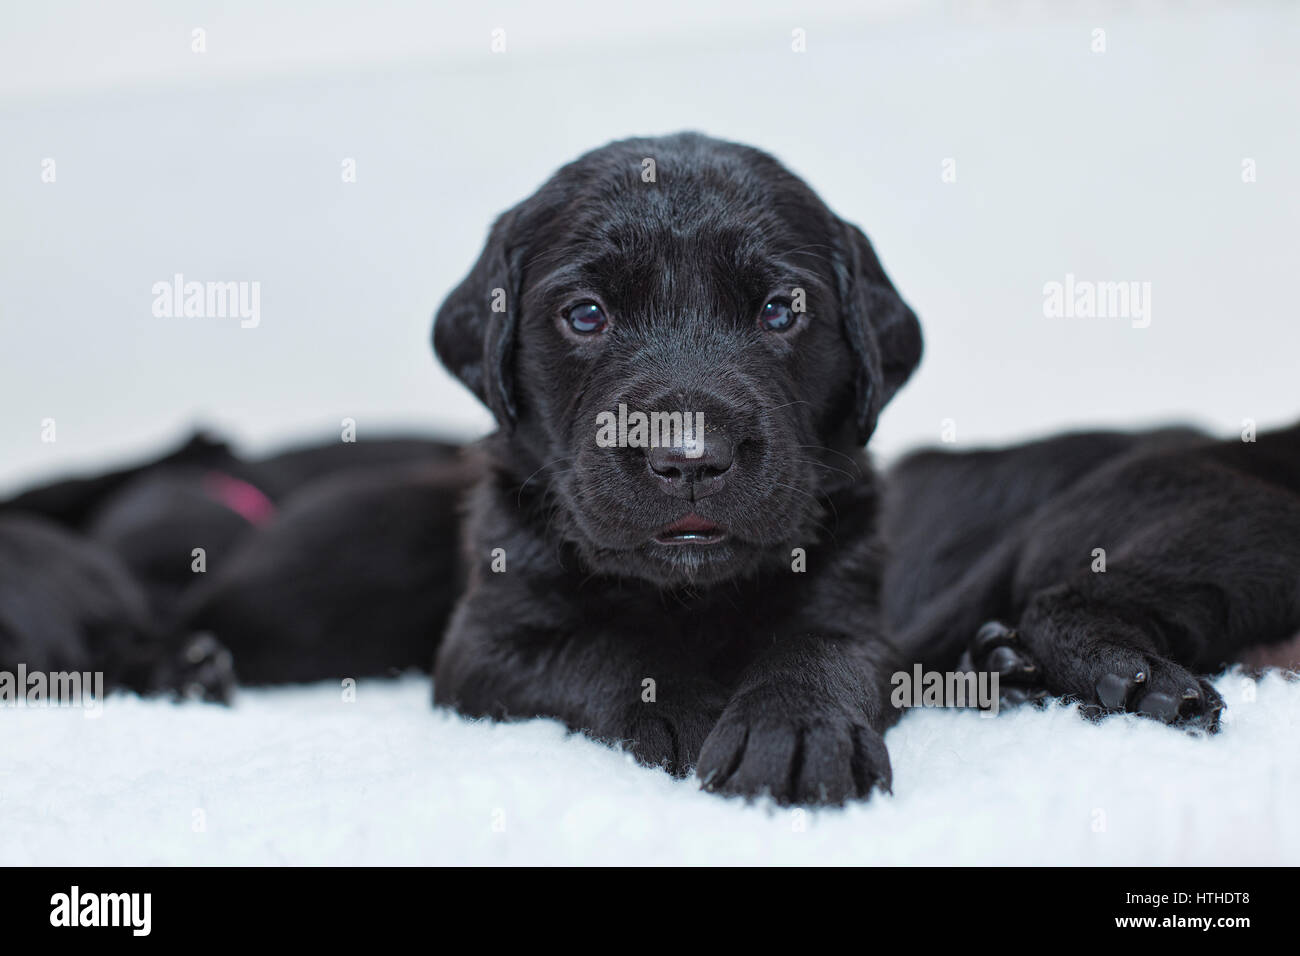 Black Labrador puppies - Stock Image